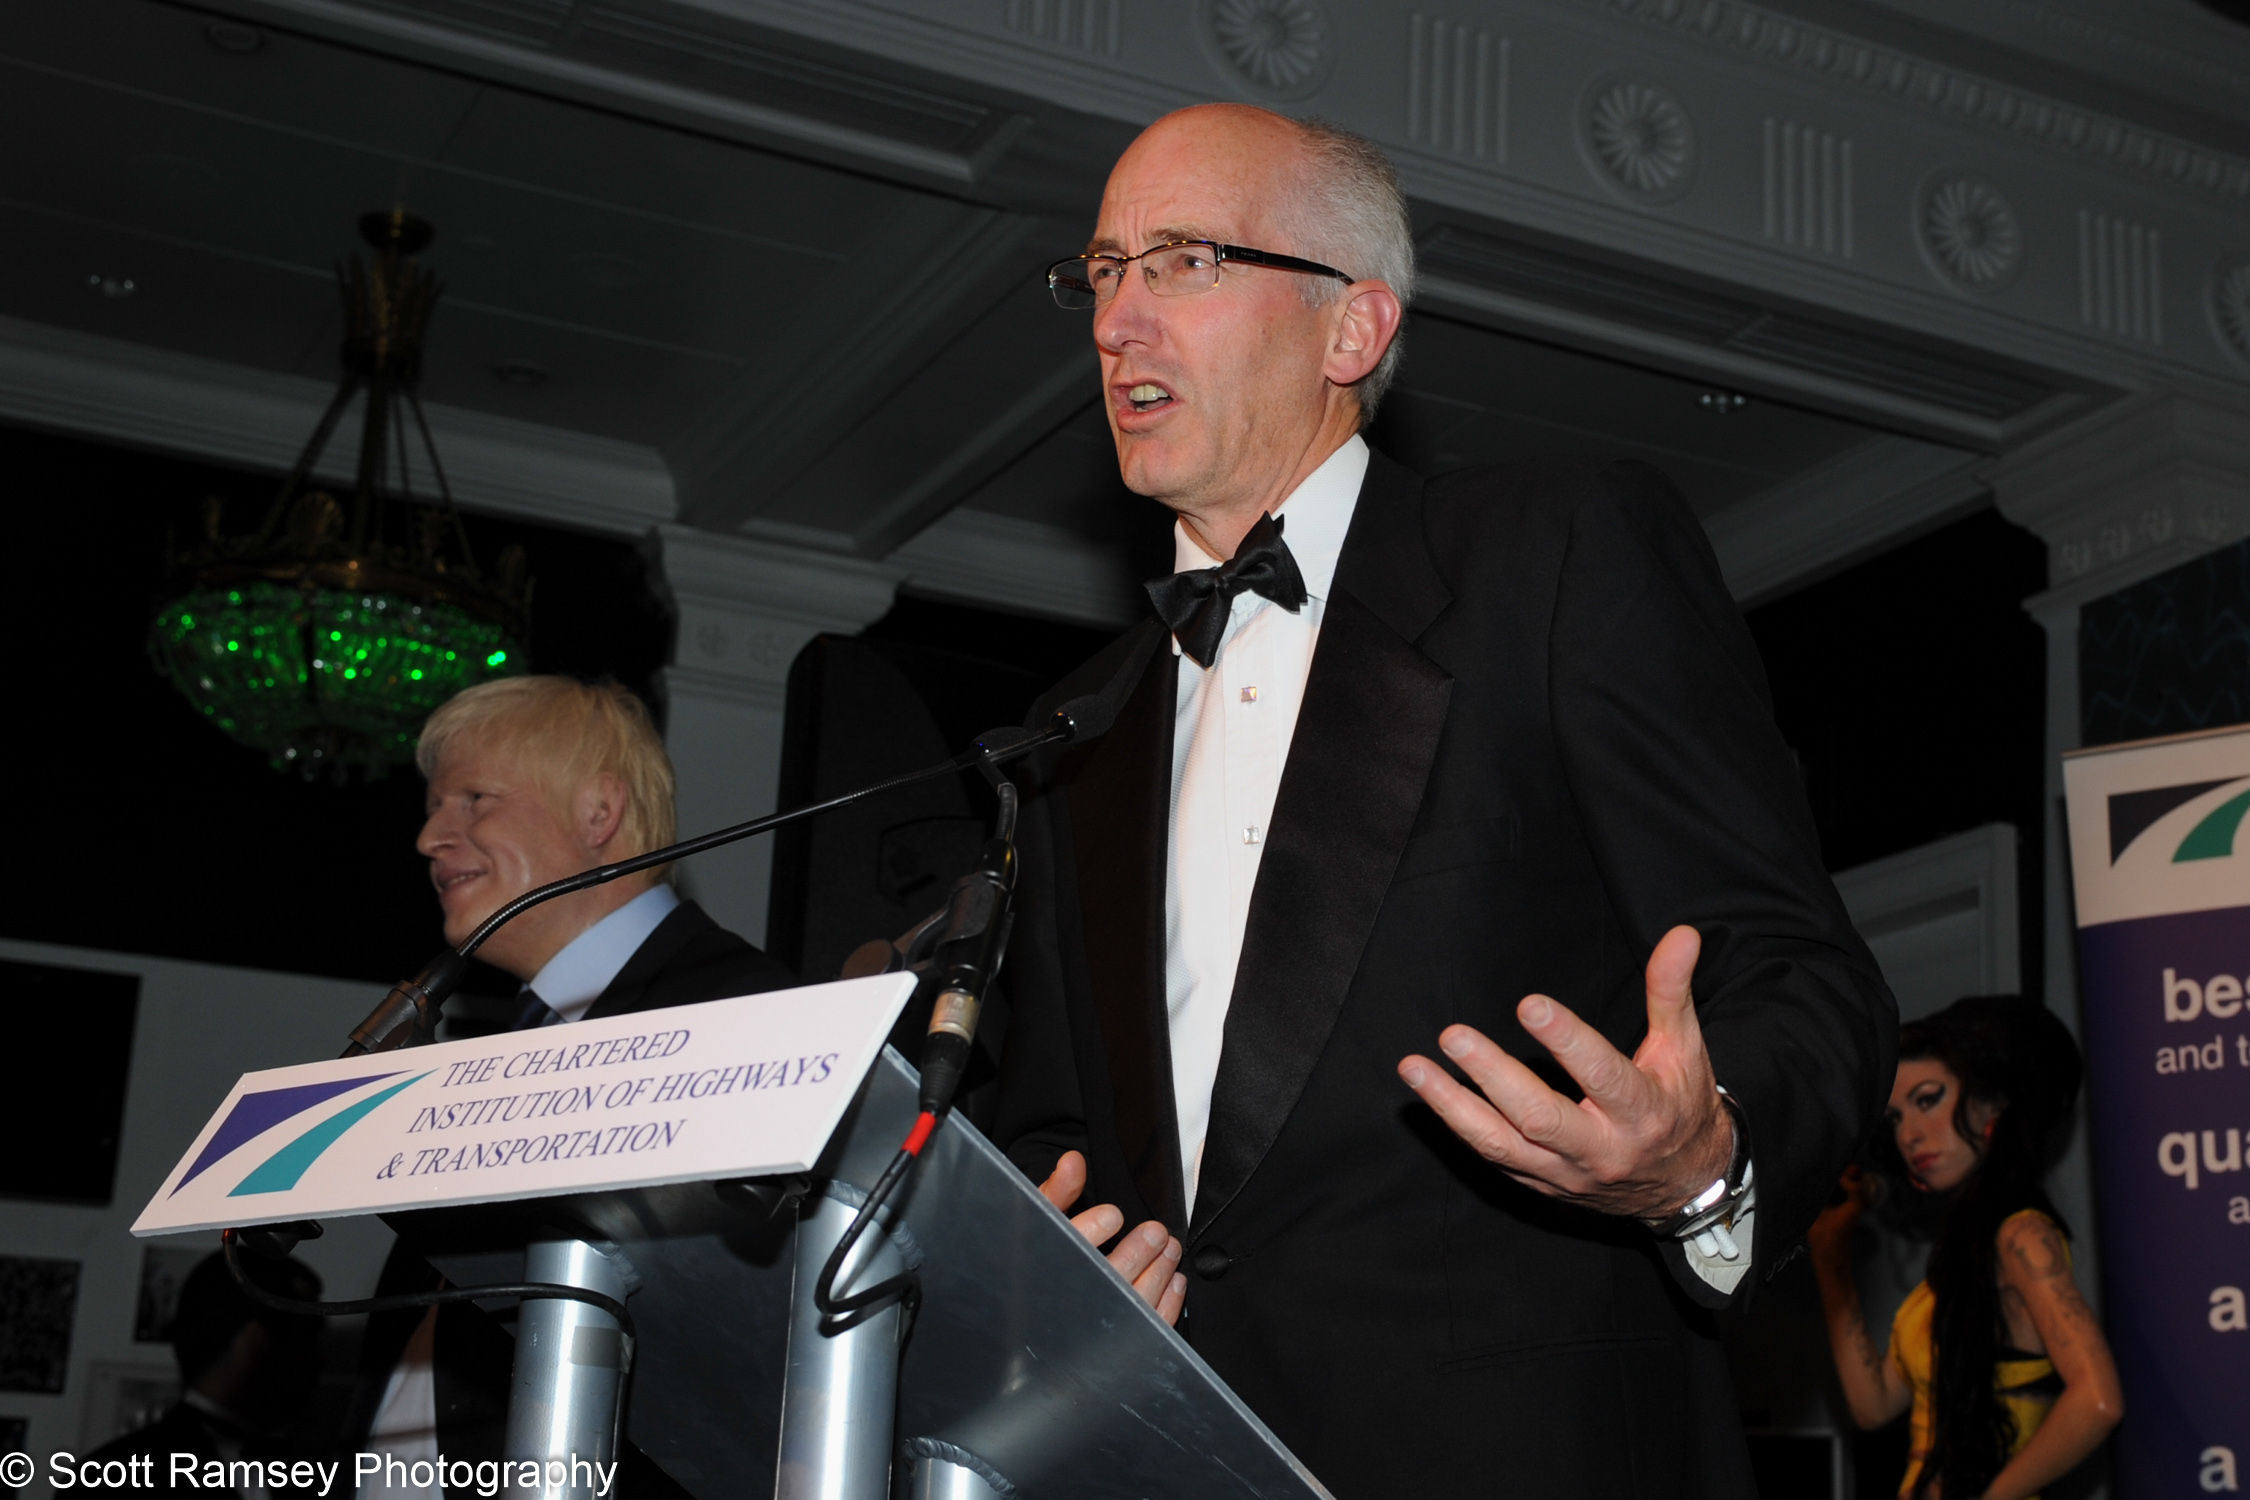 Corporate Event Photography London 130613-26